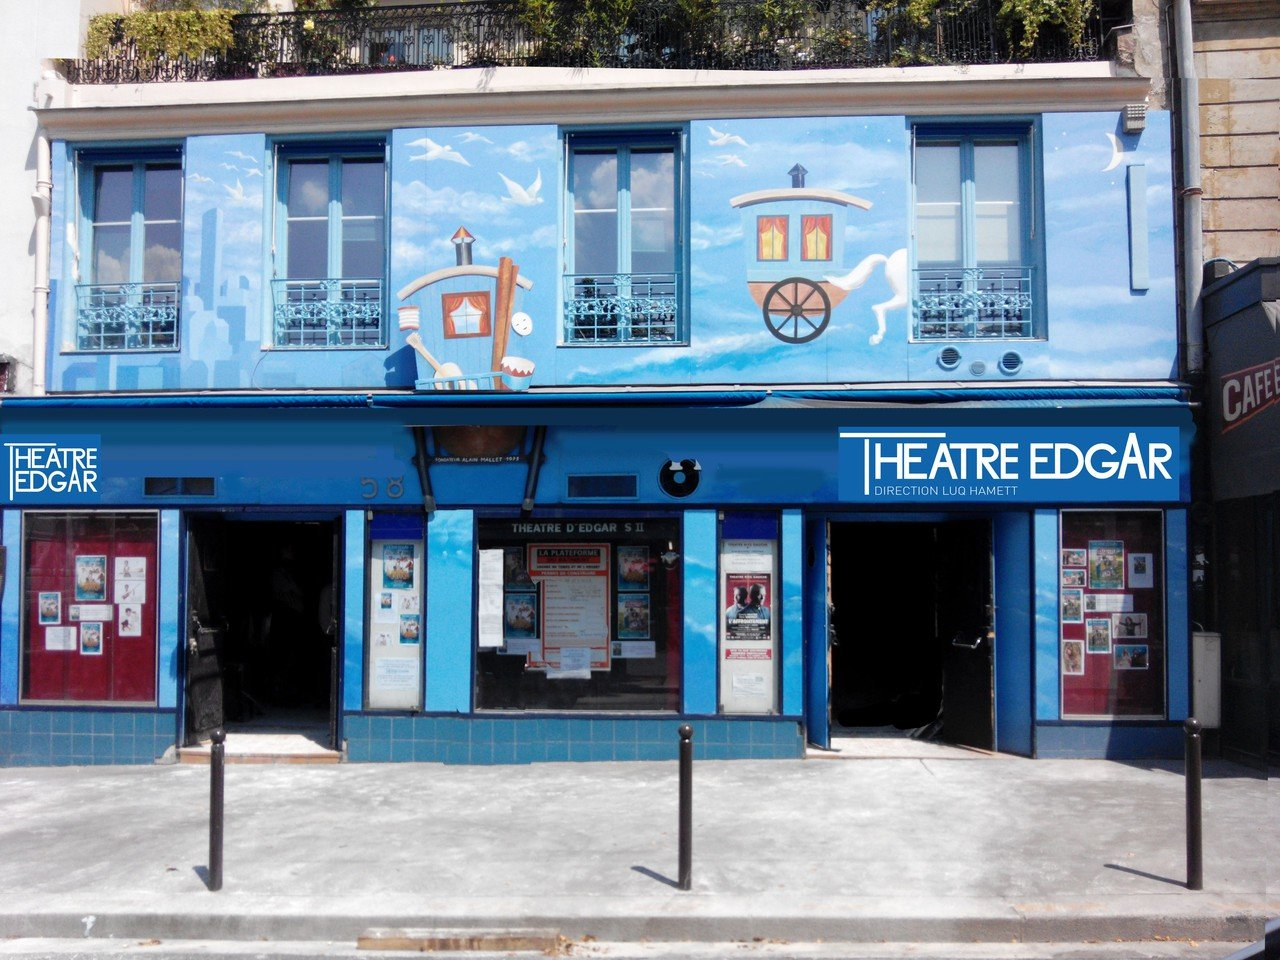 Paris corporate event venues Lieu Atypique Théâtre Edgar image 0